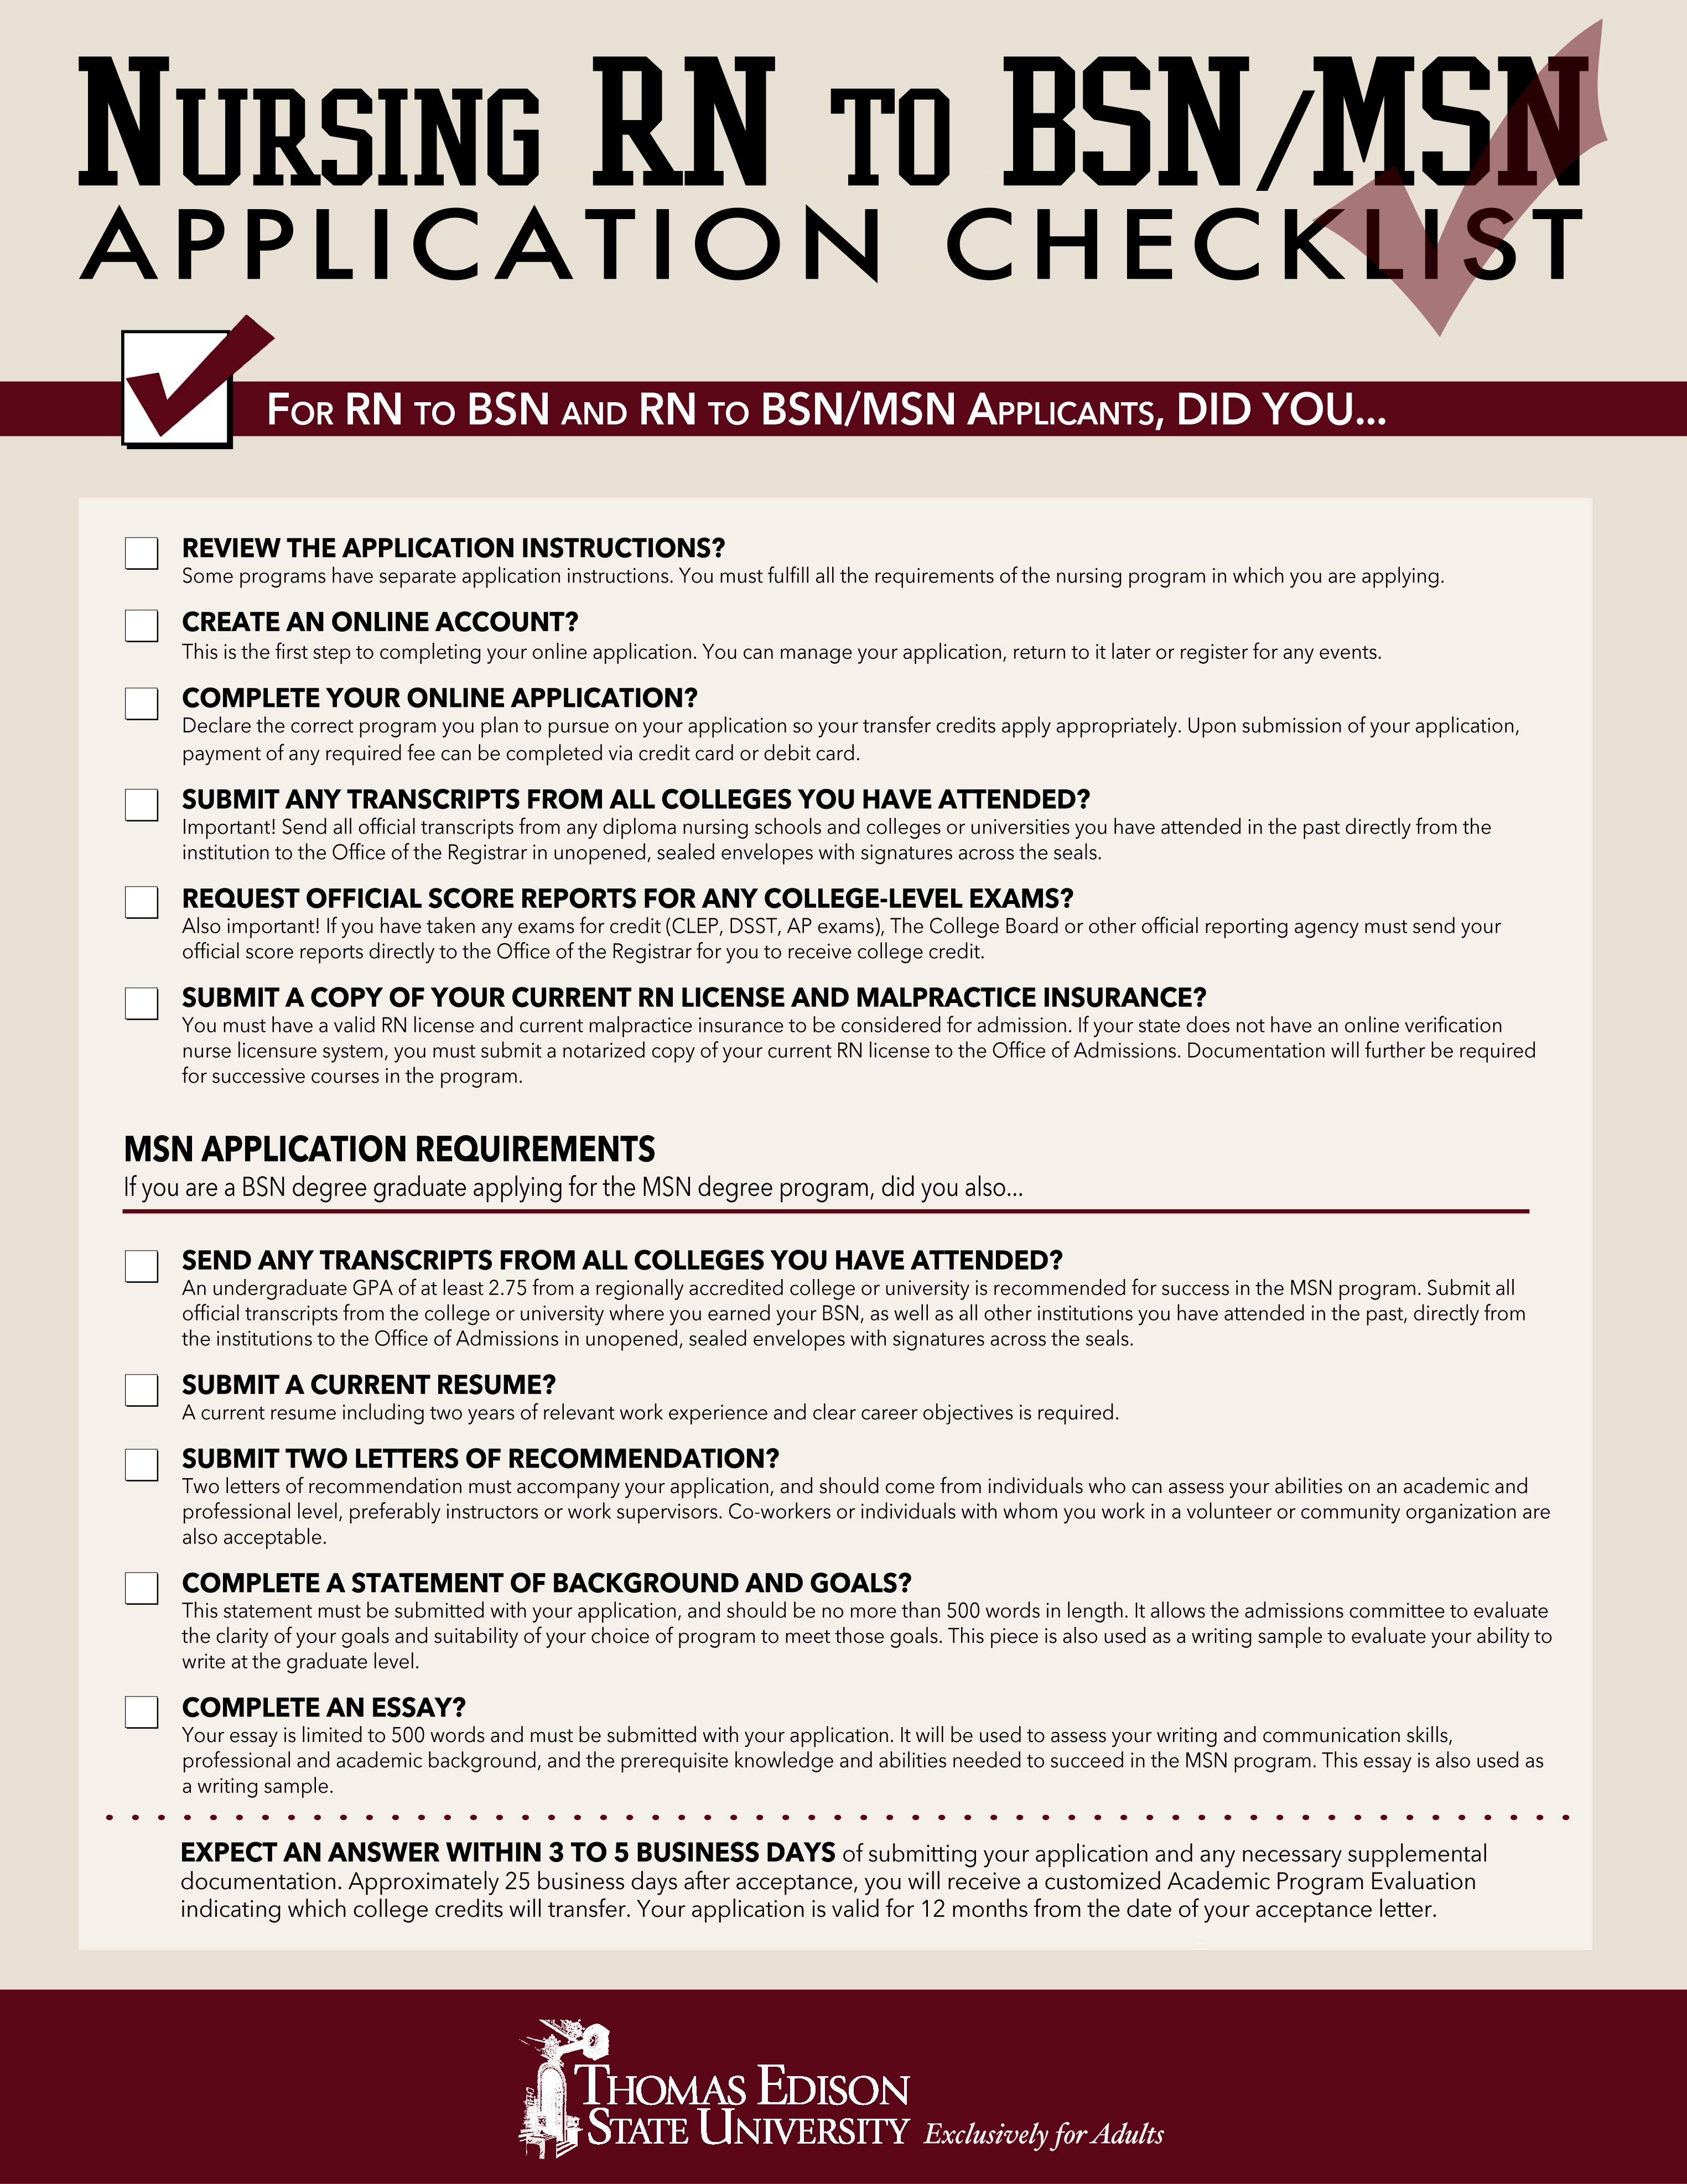 Thomas_Edison_State_University_RN_to_BSN_to_MSN_application_checklist